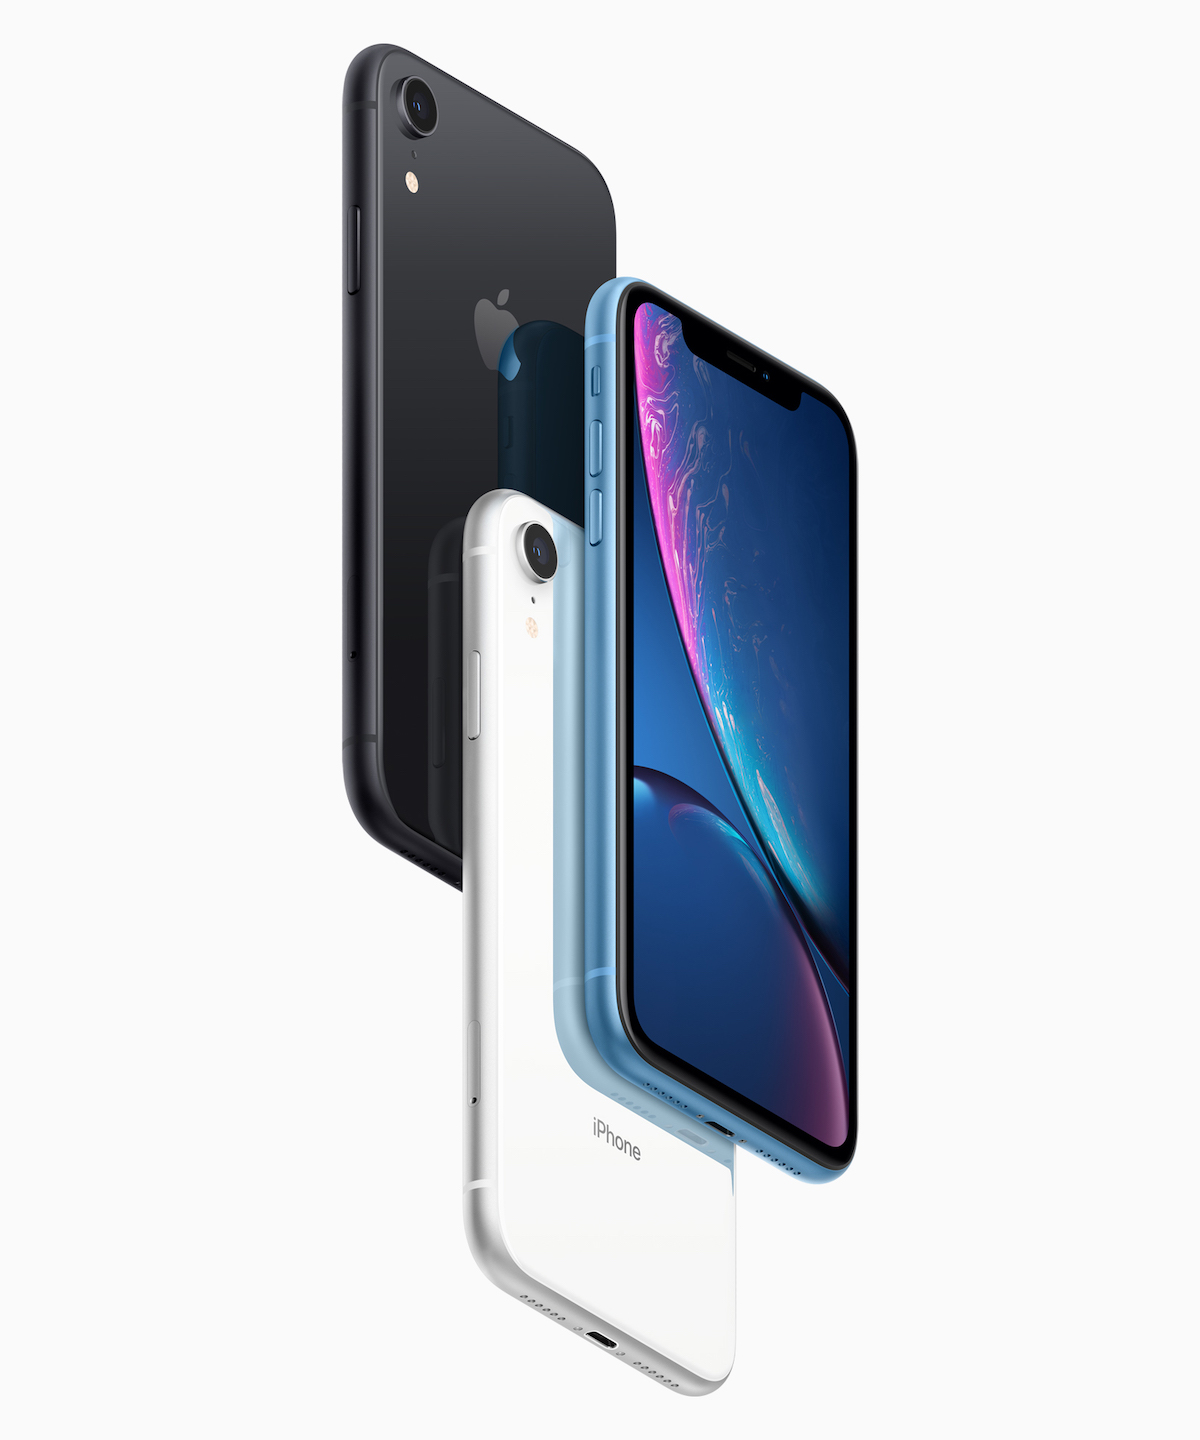 Iphone Bestellen Iphone Xr Pre Orders Begin On Friday Oct 19 In More Than